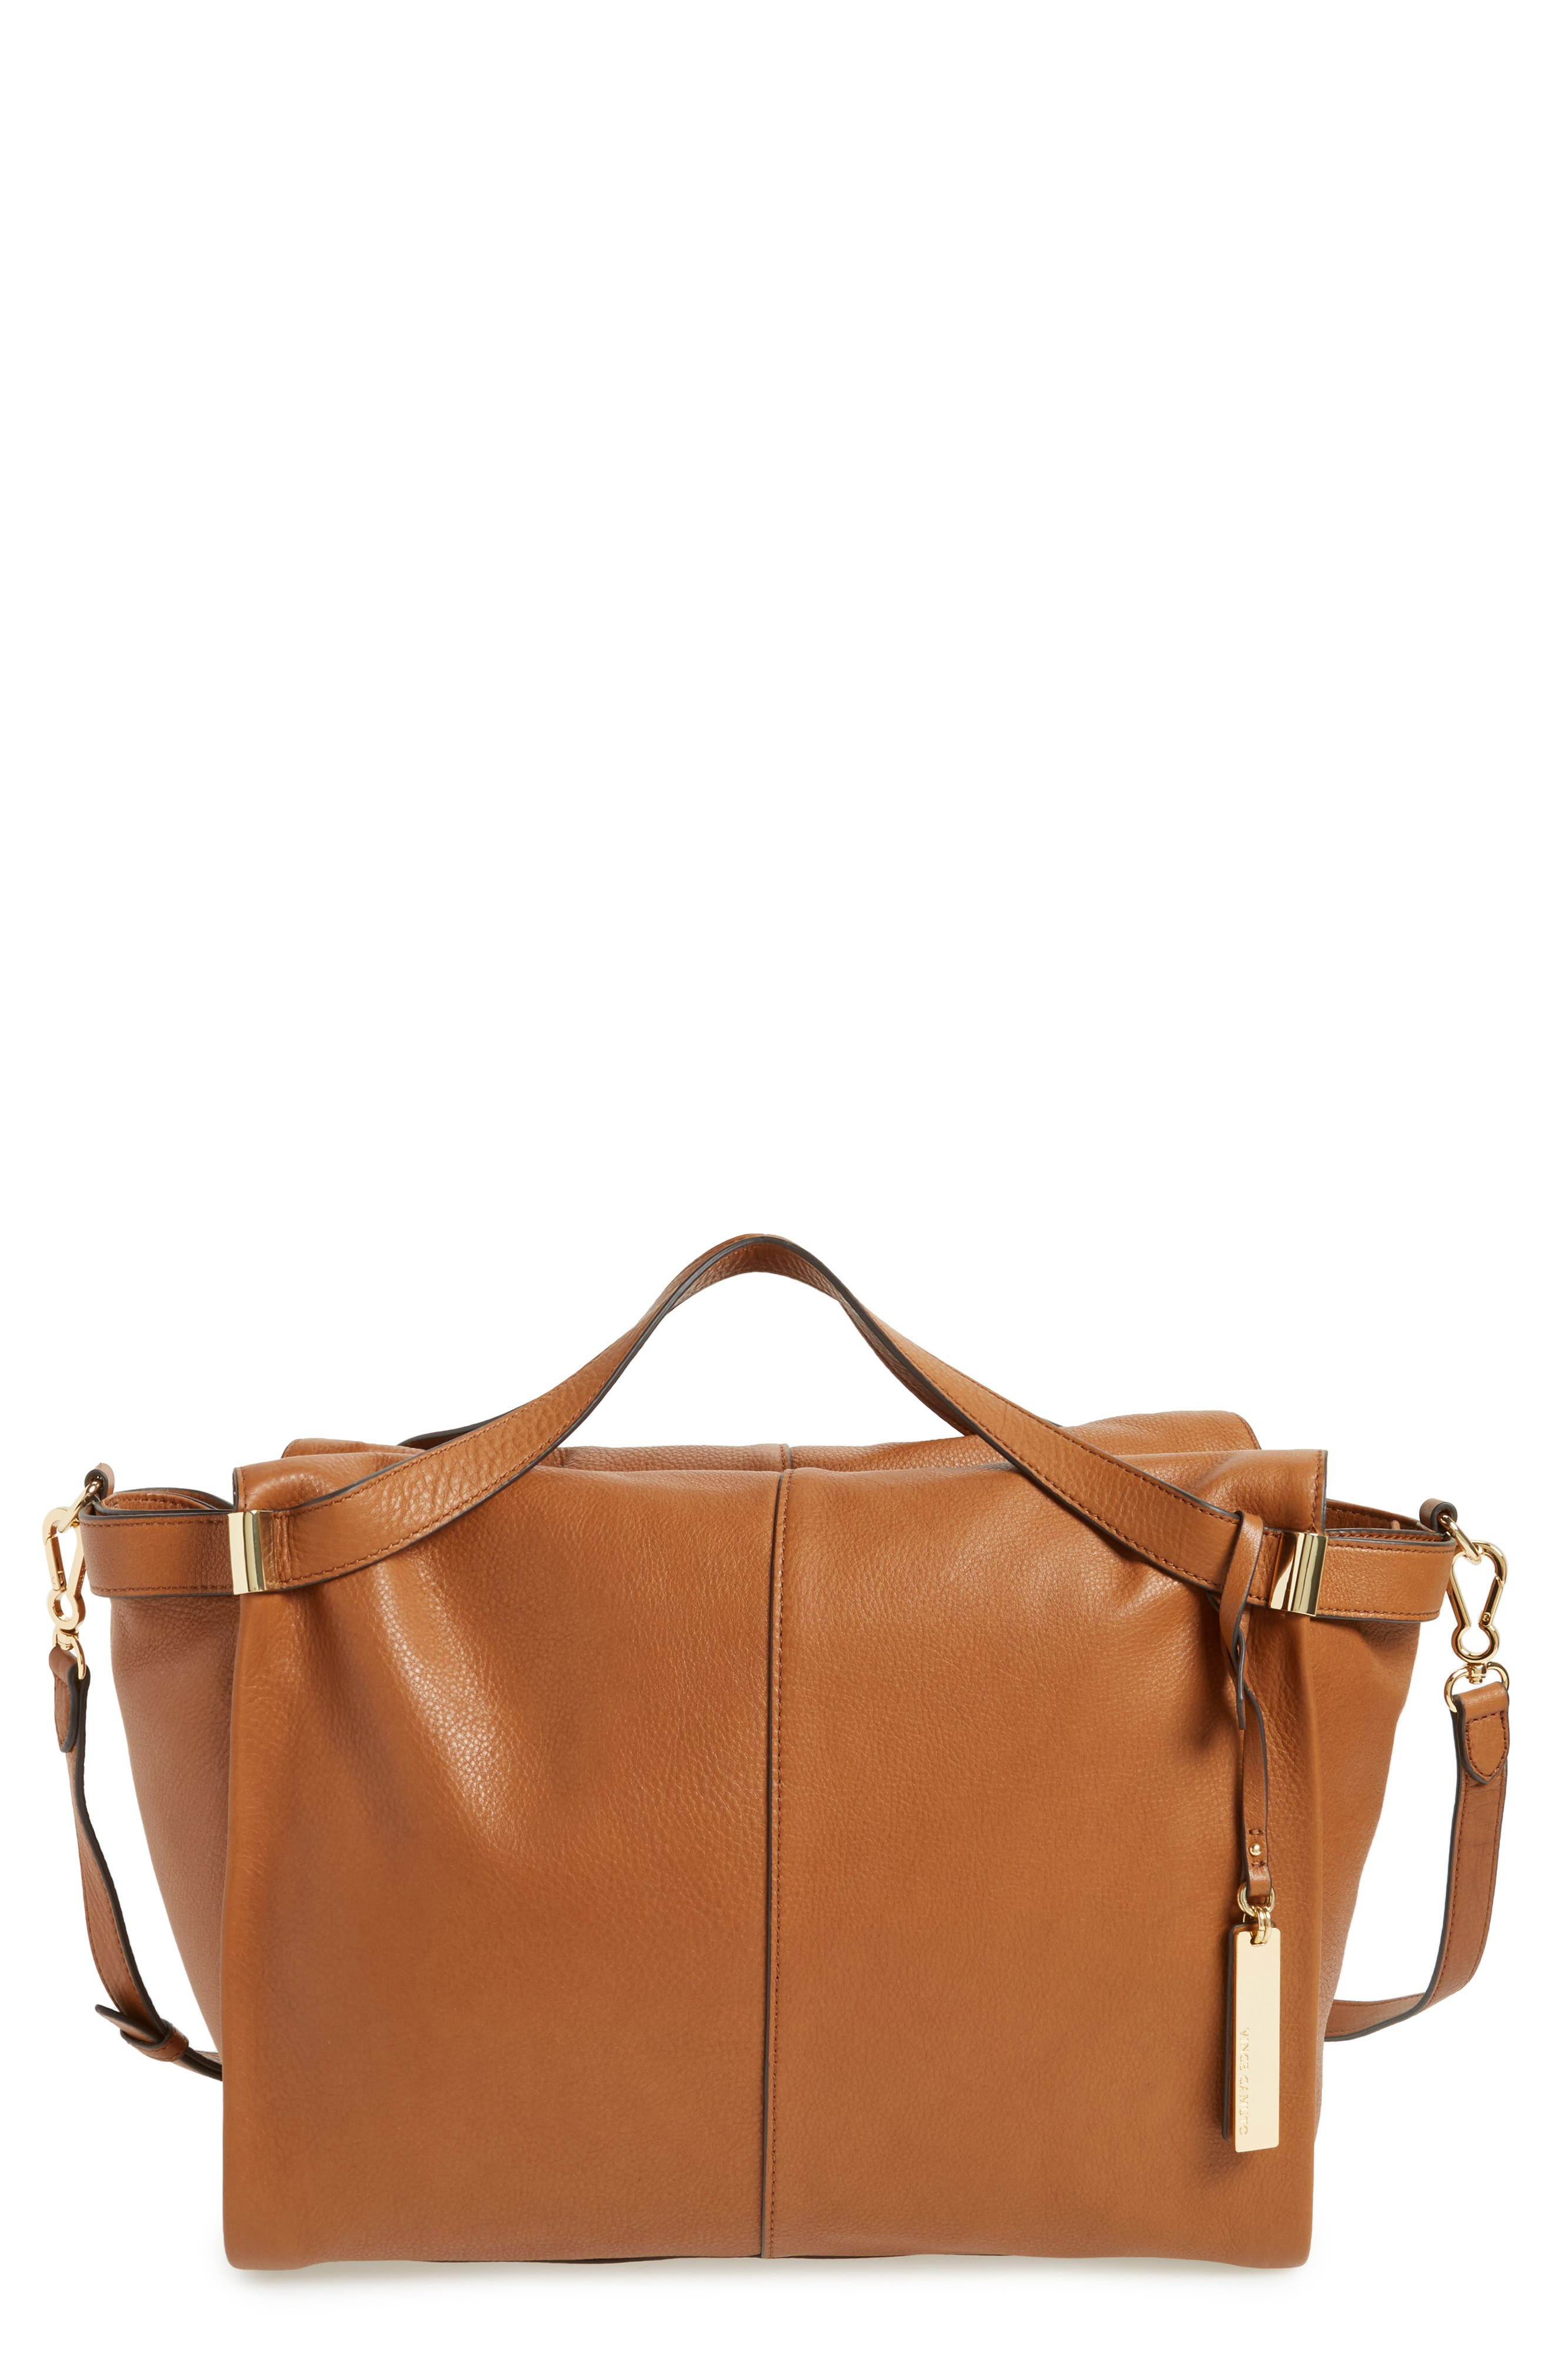 Rosen Leather Satchel,                         Main,                         color, Dark Rum